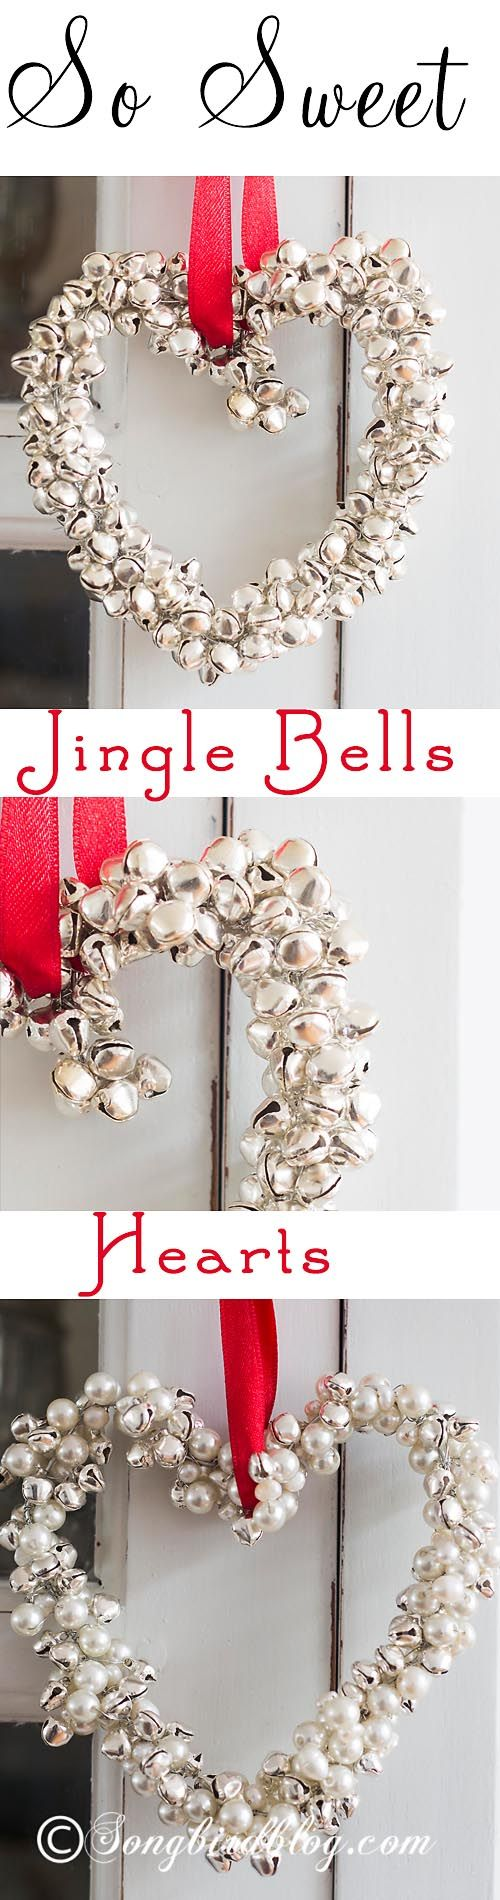 Making christmas decorations jingle bells - Homemade Christmas Ornament These Jingle Bells Hearts Are Fun Easy And Quick To Make